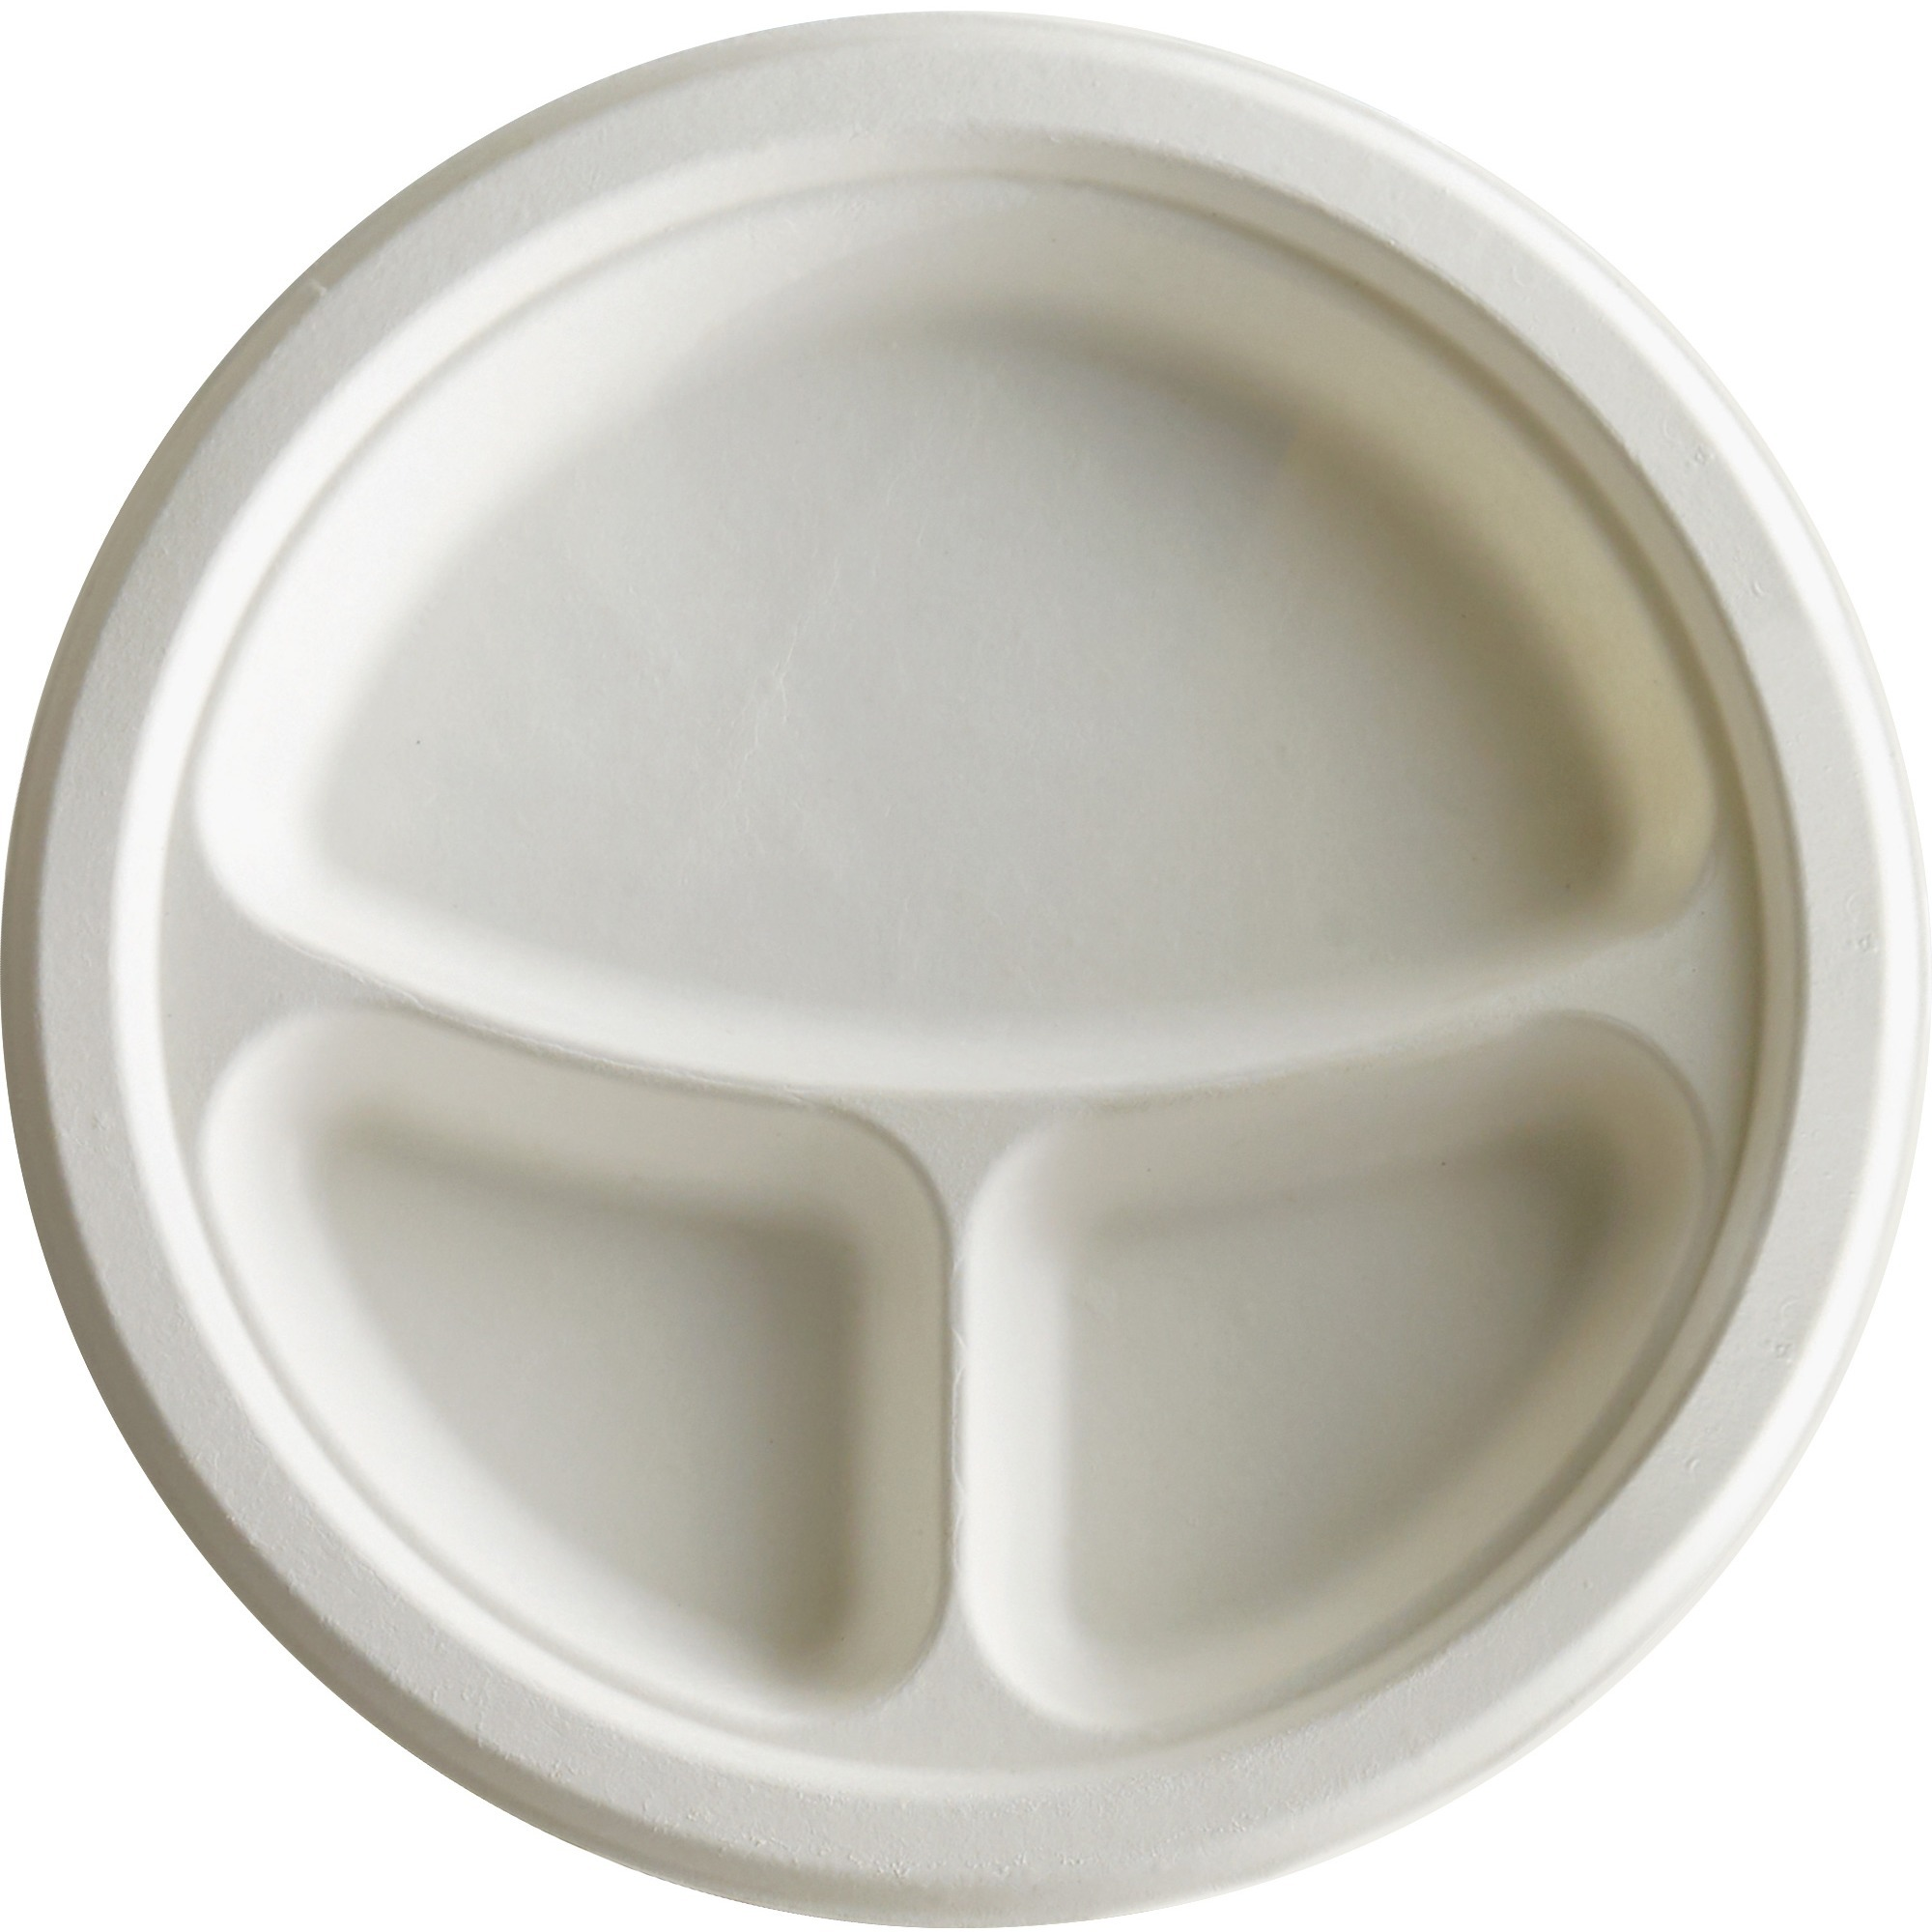 Eco-Products, ECOEPP007, 3-Compartment Sugarcane Fiber Plates, 500 / Carton, White